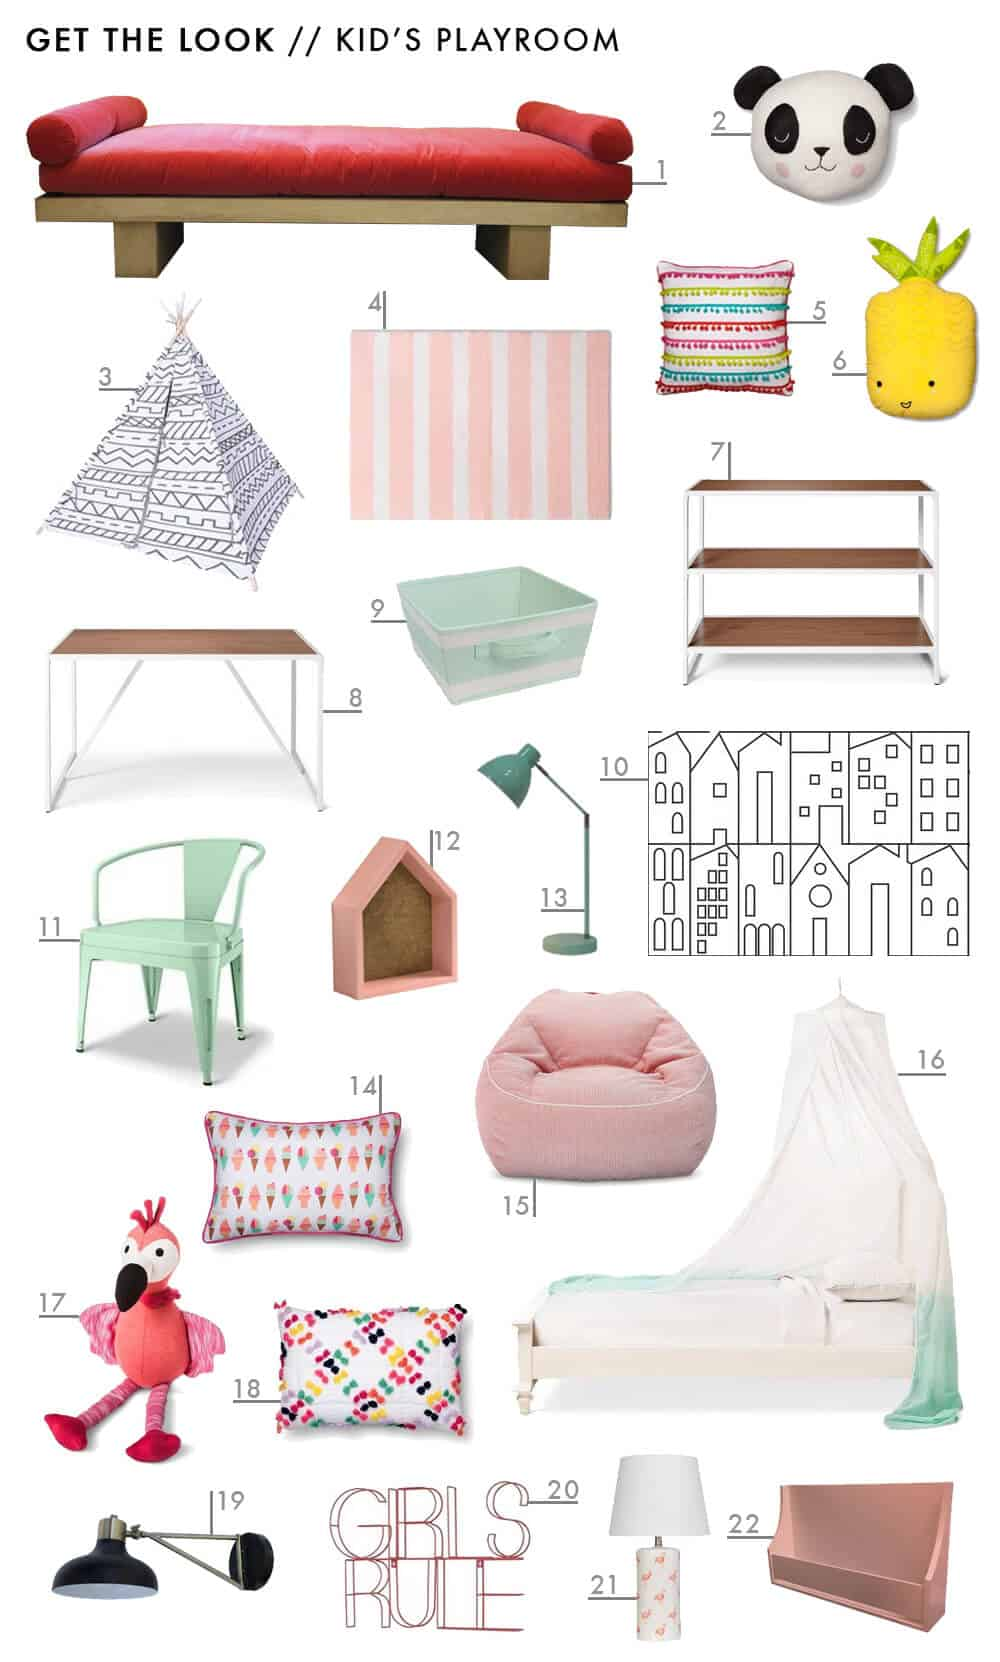 Target Pillowfort Get The Look Kid Childs Playroom Colorful Pink Emily Henderson